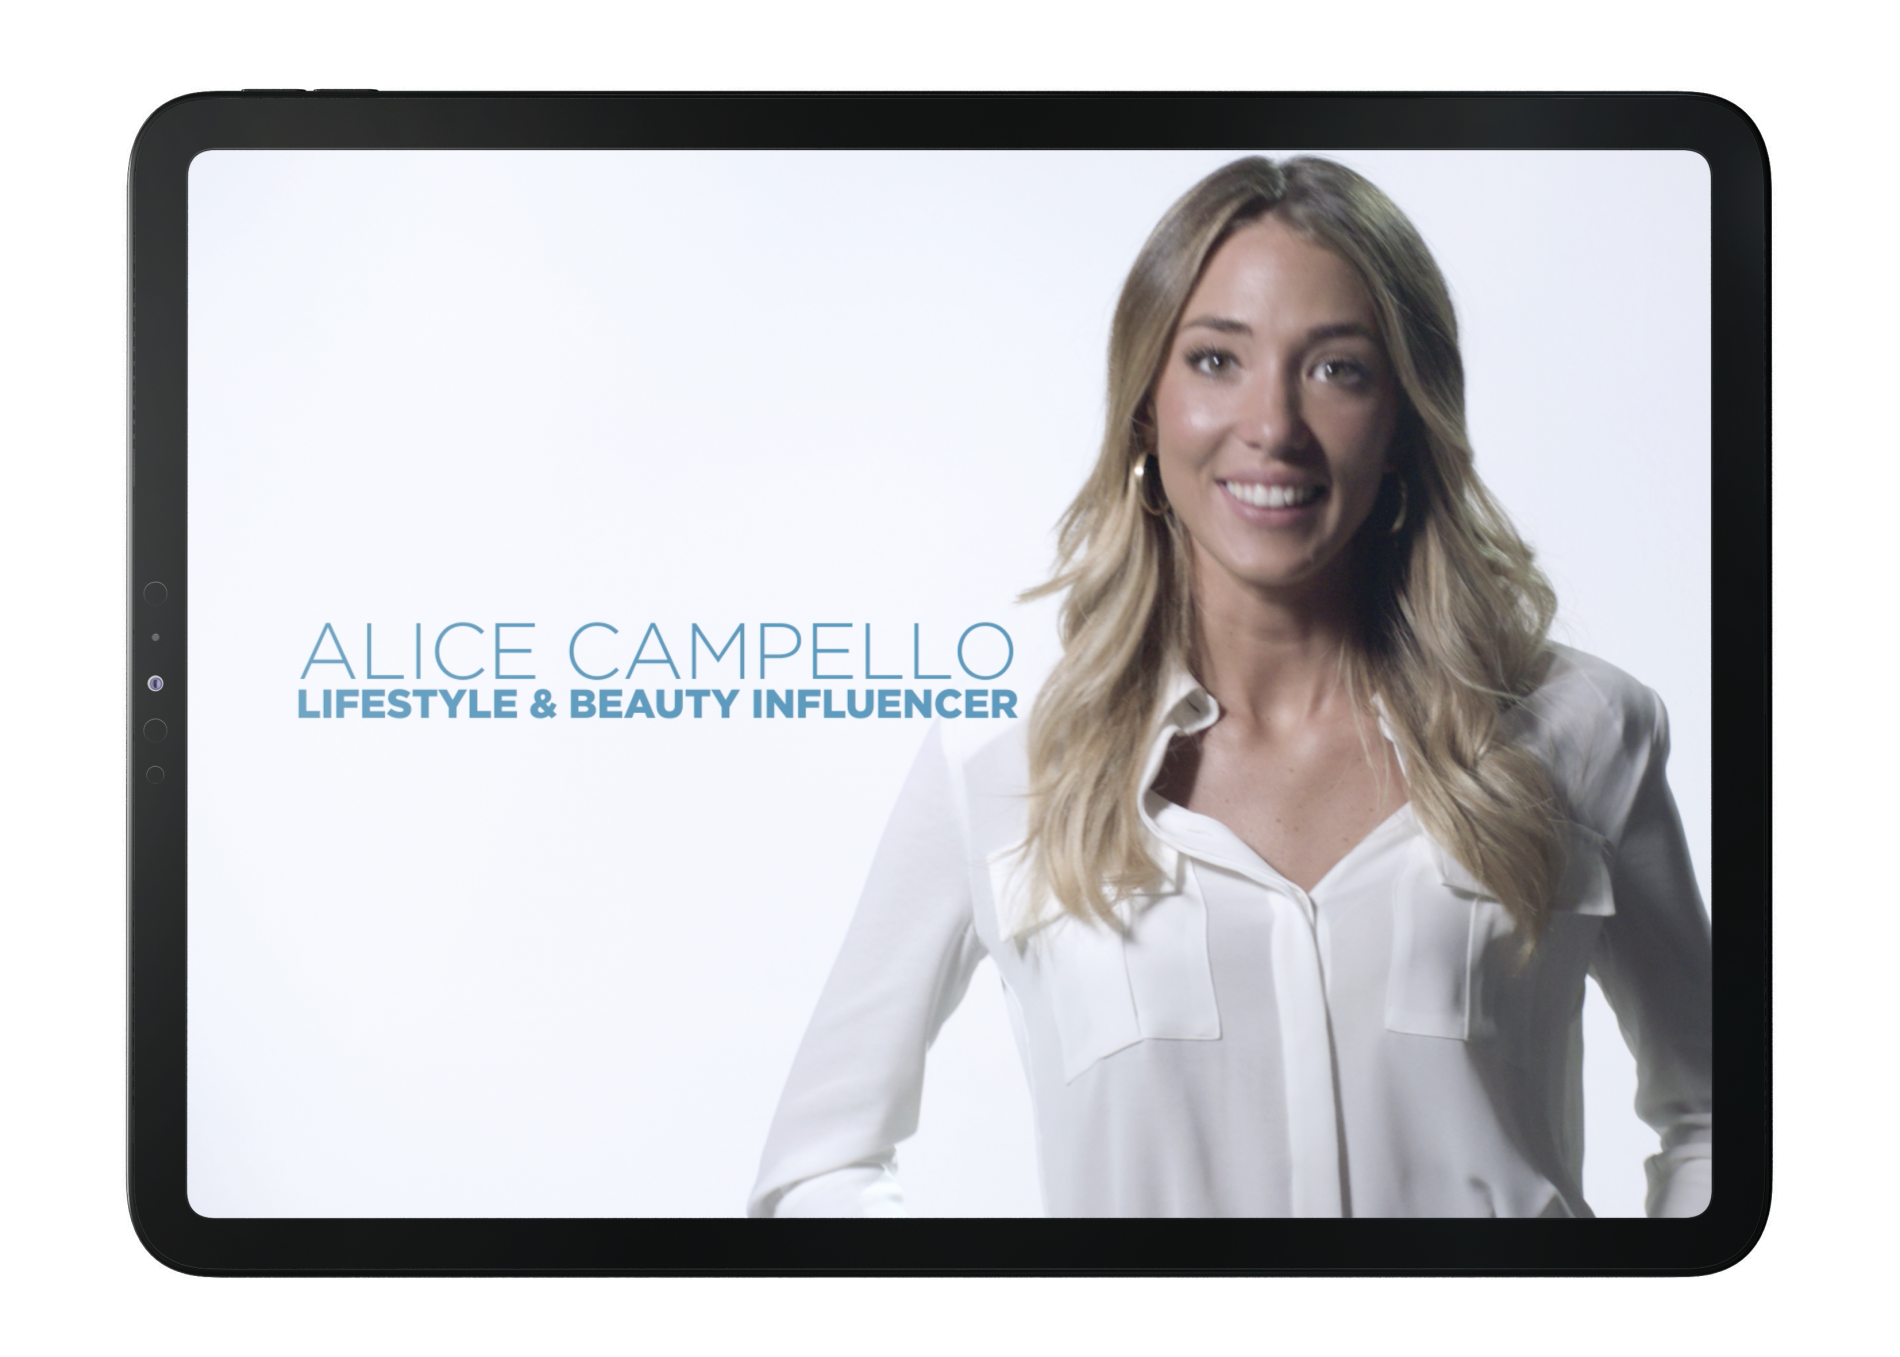 Alice Campello the influencer chosen by Insana